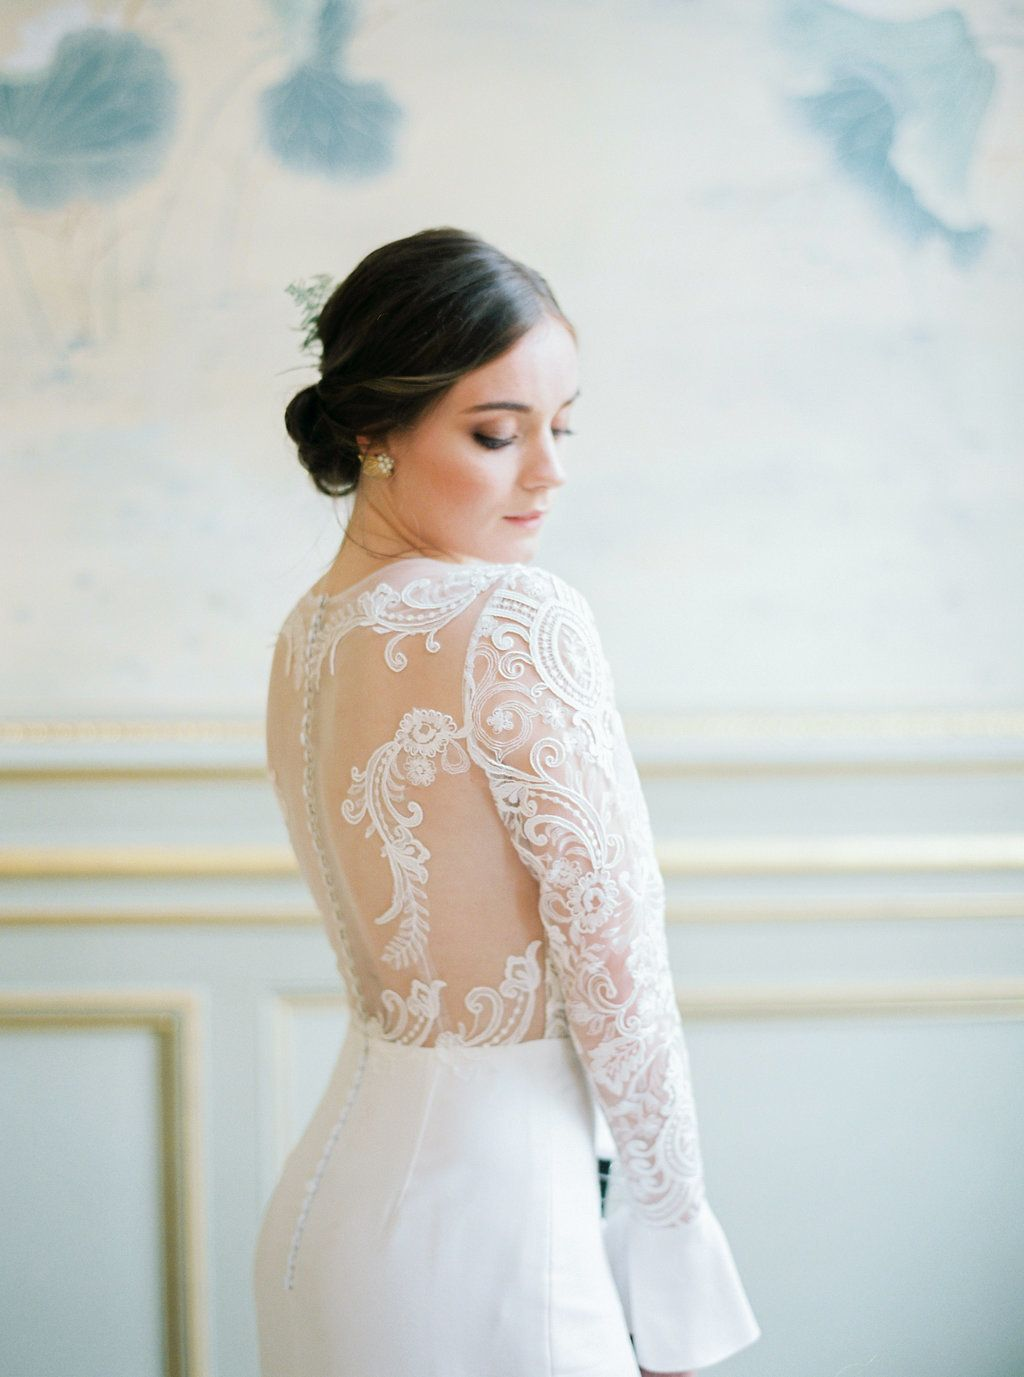 Long sleeve wedding dress topper  Tropical Chic Meets Parisian Elegance And Weure Obsessed